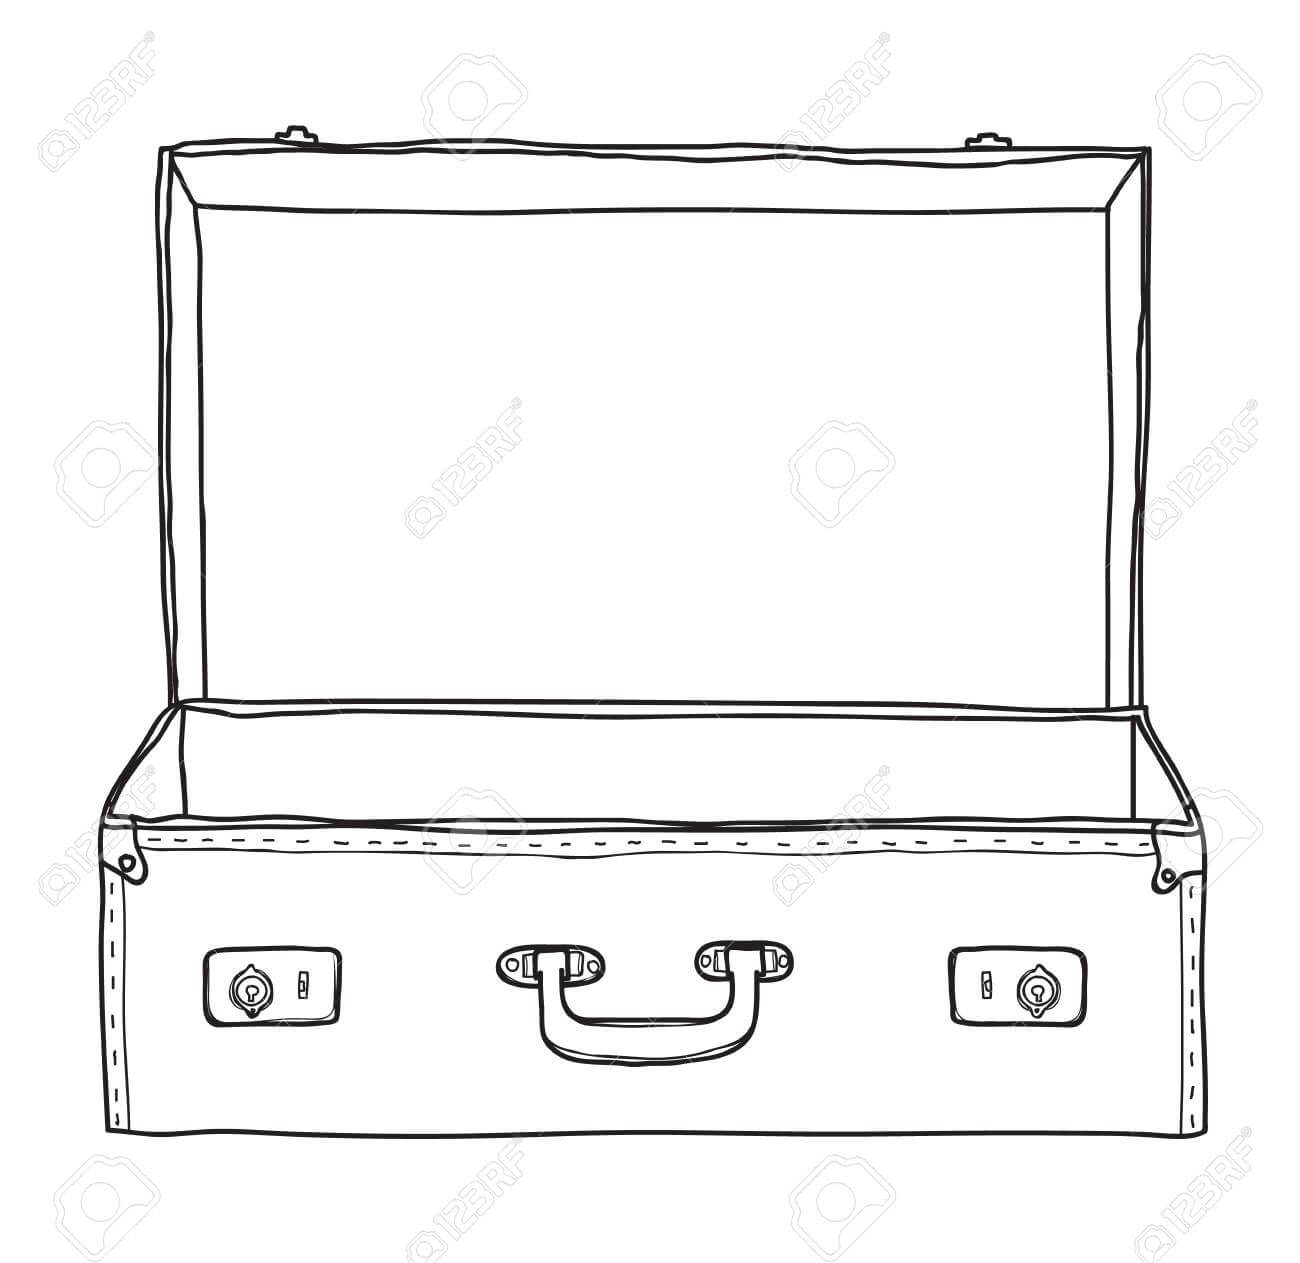 Suitcase Vintage Empty Suitcase Hand Drawn Vector Line Art Illustration Intended For Blank Suitcase Template